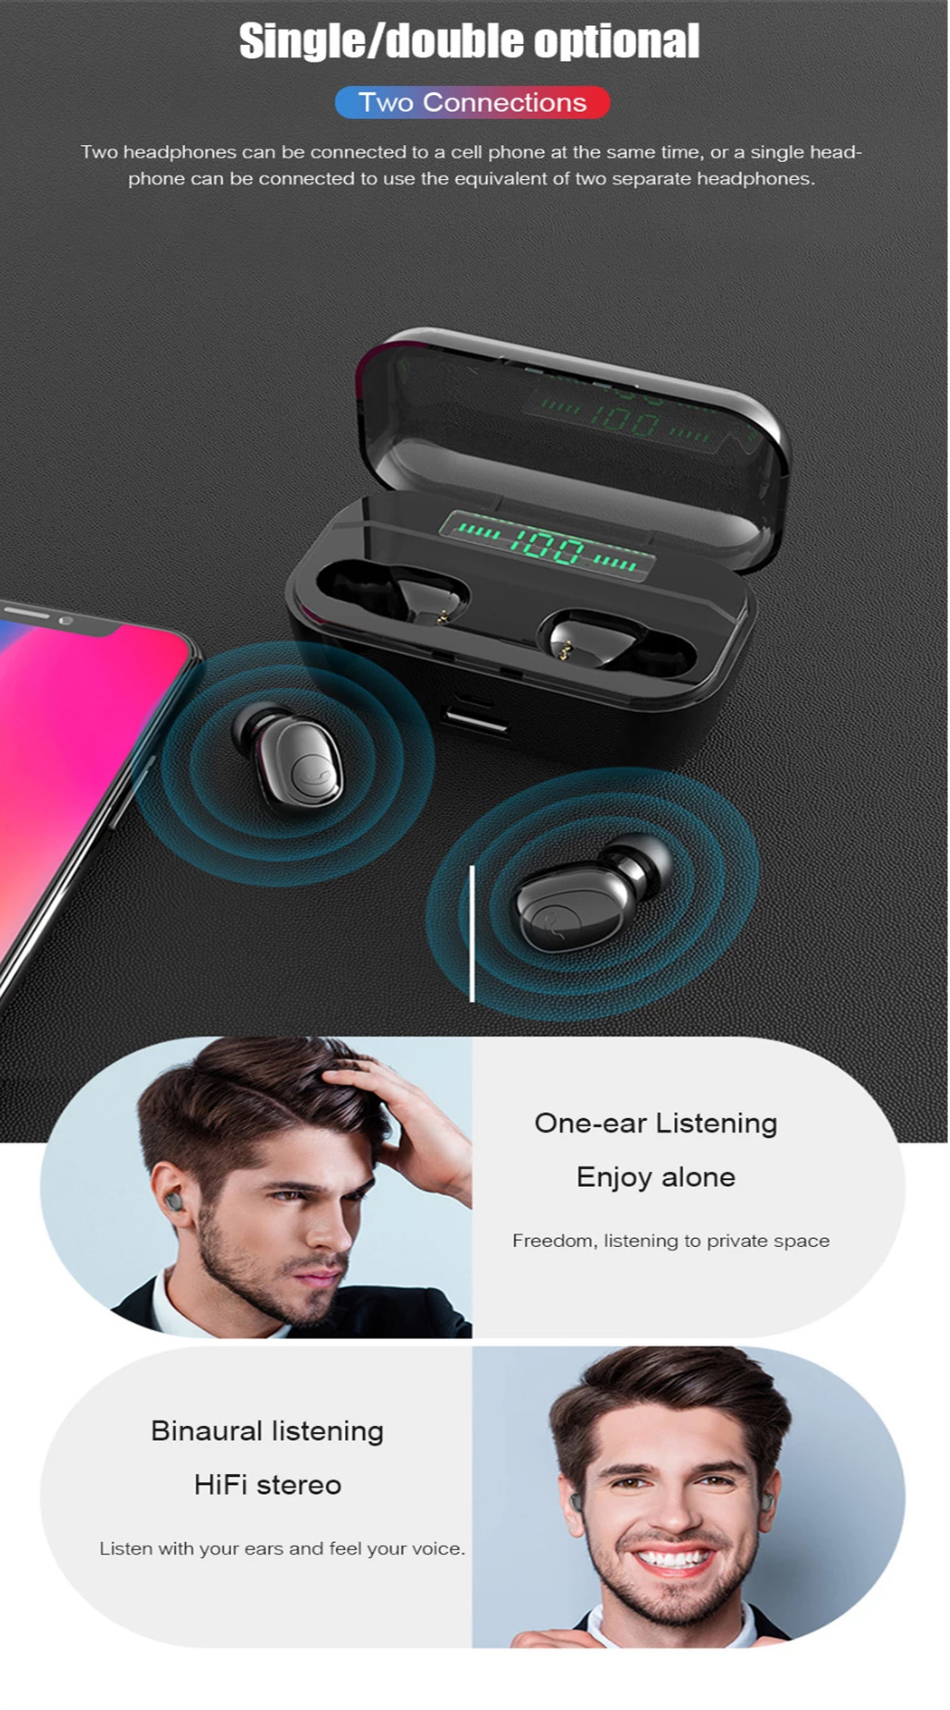 G6S-Bluetooth-Earbuds-True-Wireless-Earbuds-Bluetooth-5-0-Wirelss-Headphones-Bluetooth-Headphones-with-LED-Display_03